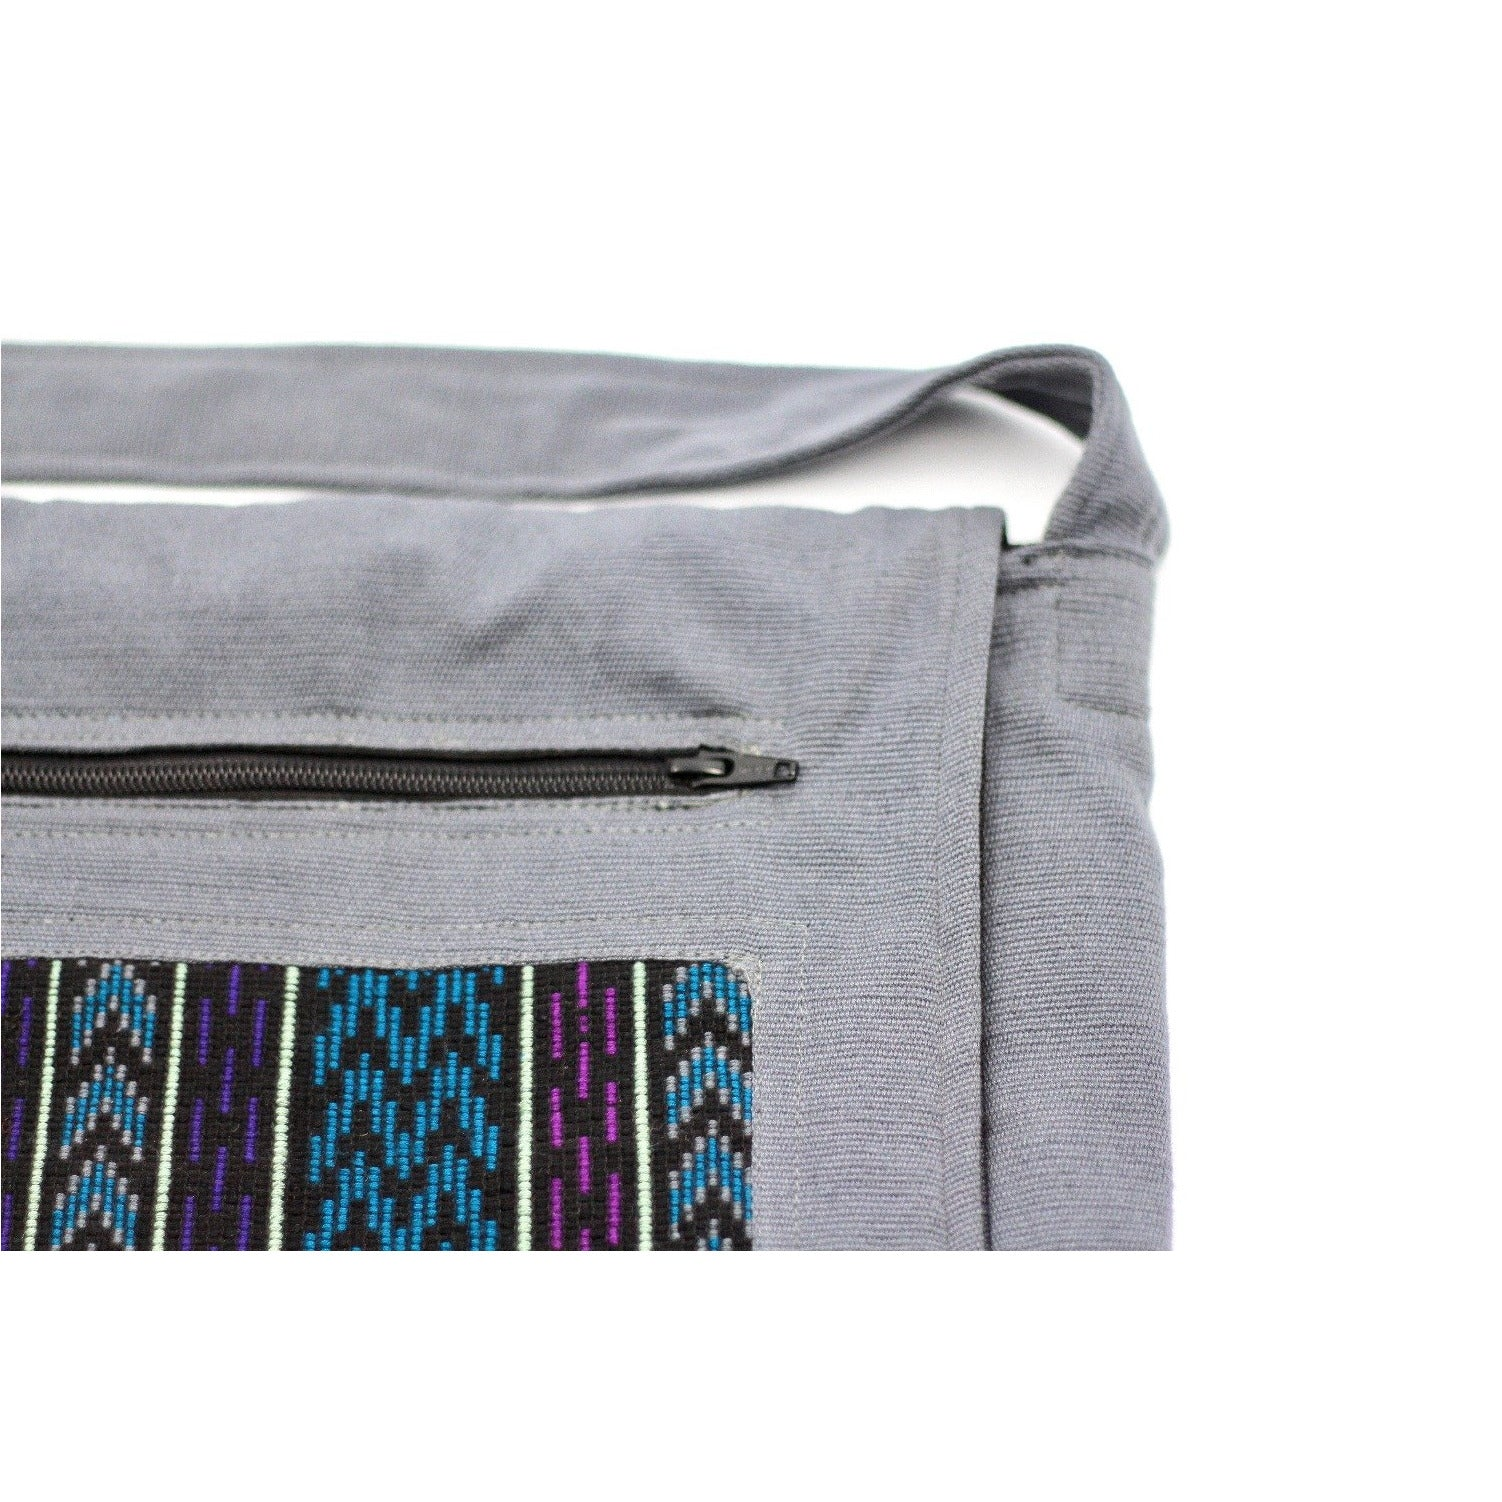 uq k'iche messenger bag zoom zipper